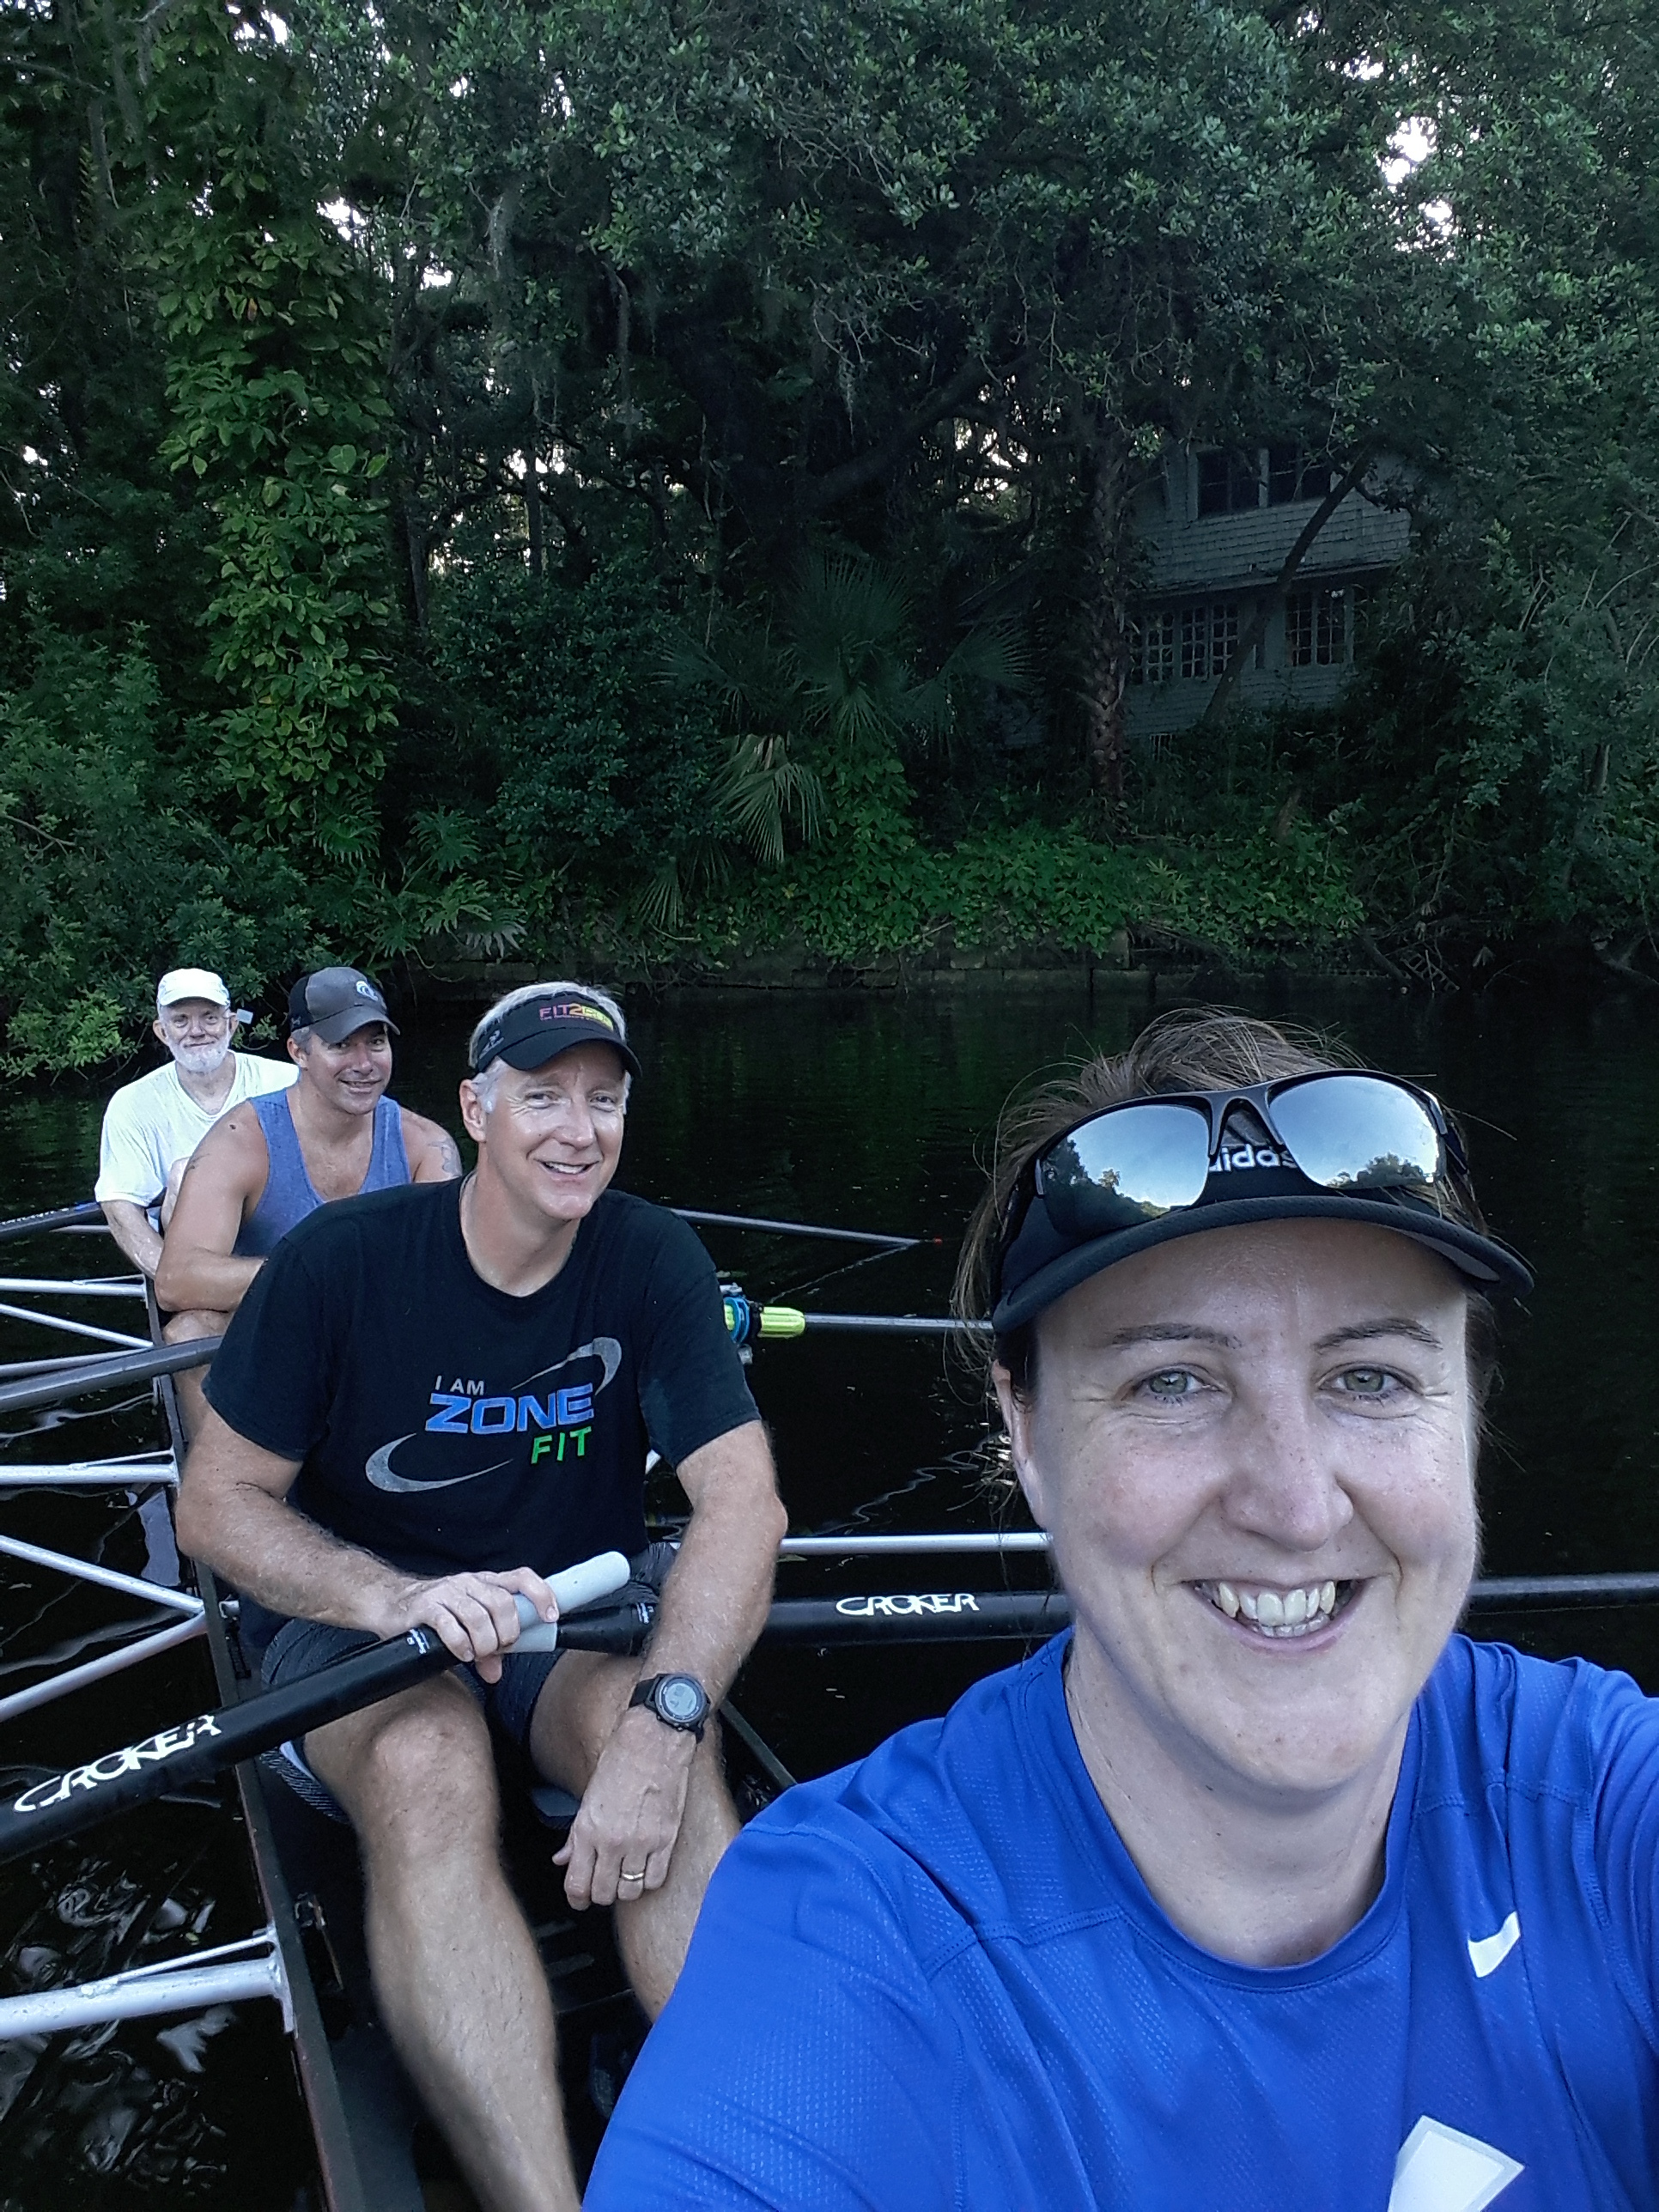 don, Matt, Charlie and Kath 8 miles up river, 7/4/2017 7:14:00 AM